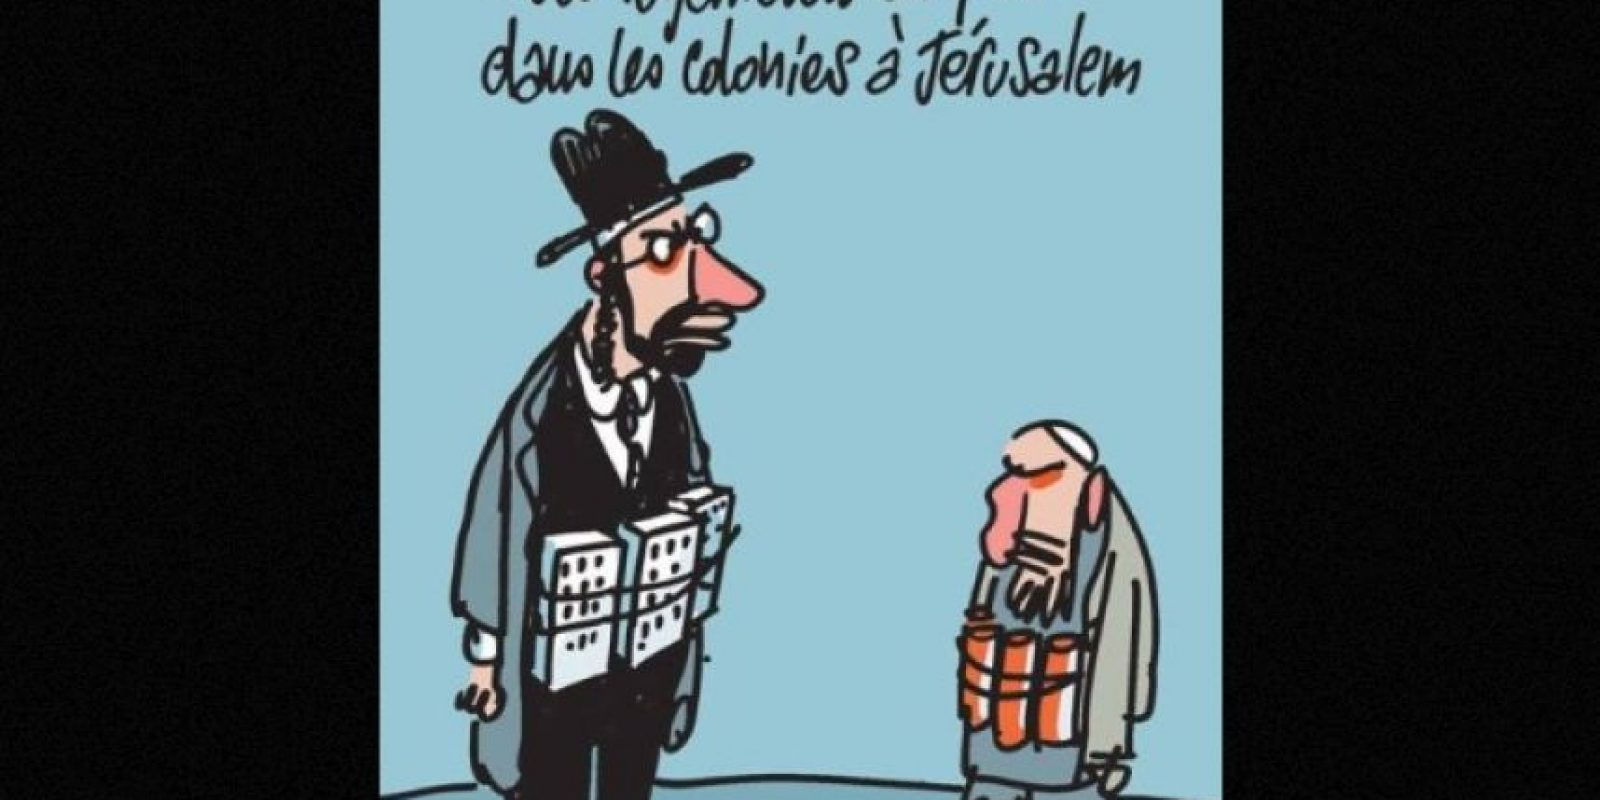 Foto: Facebook: Charlie Hebdo Officiel